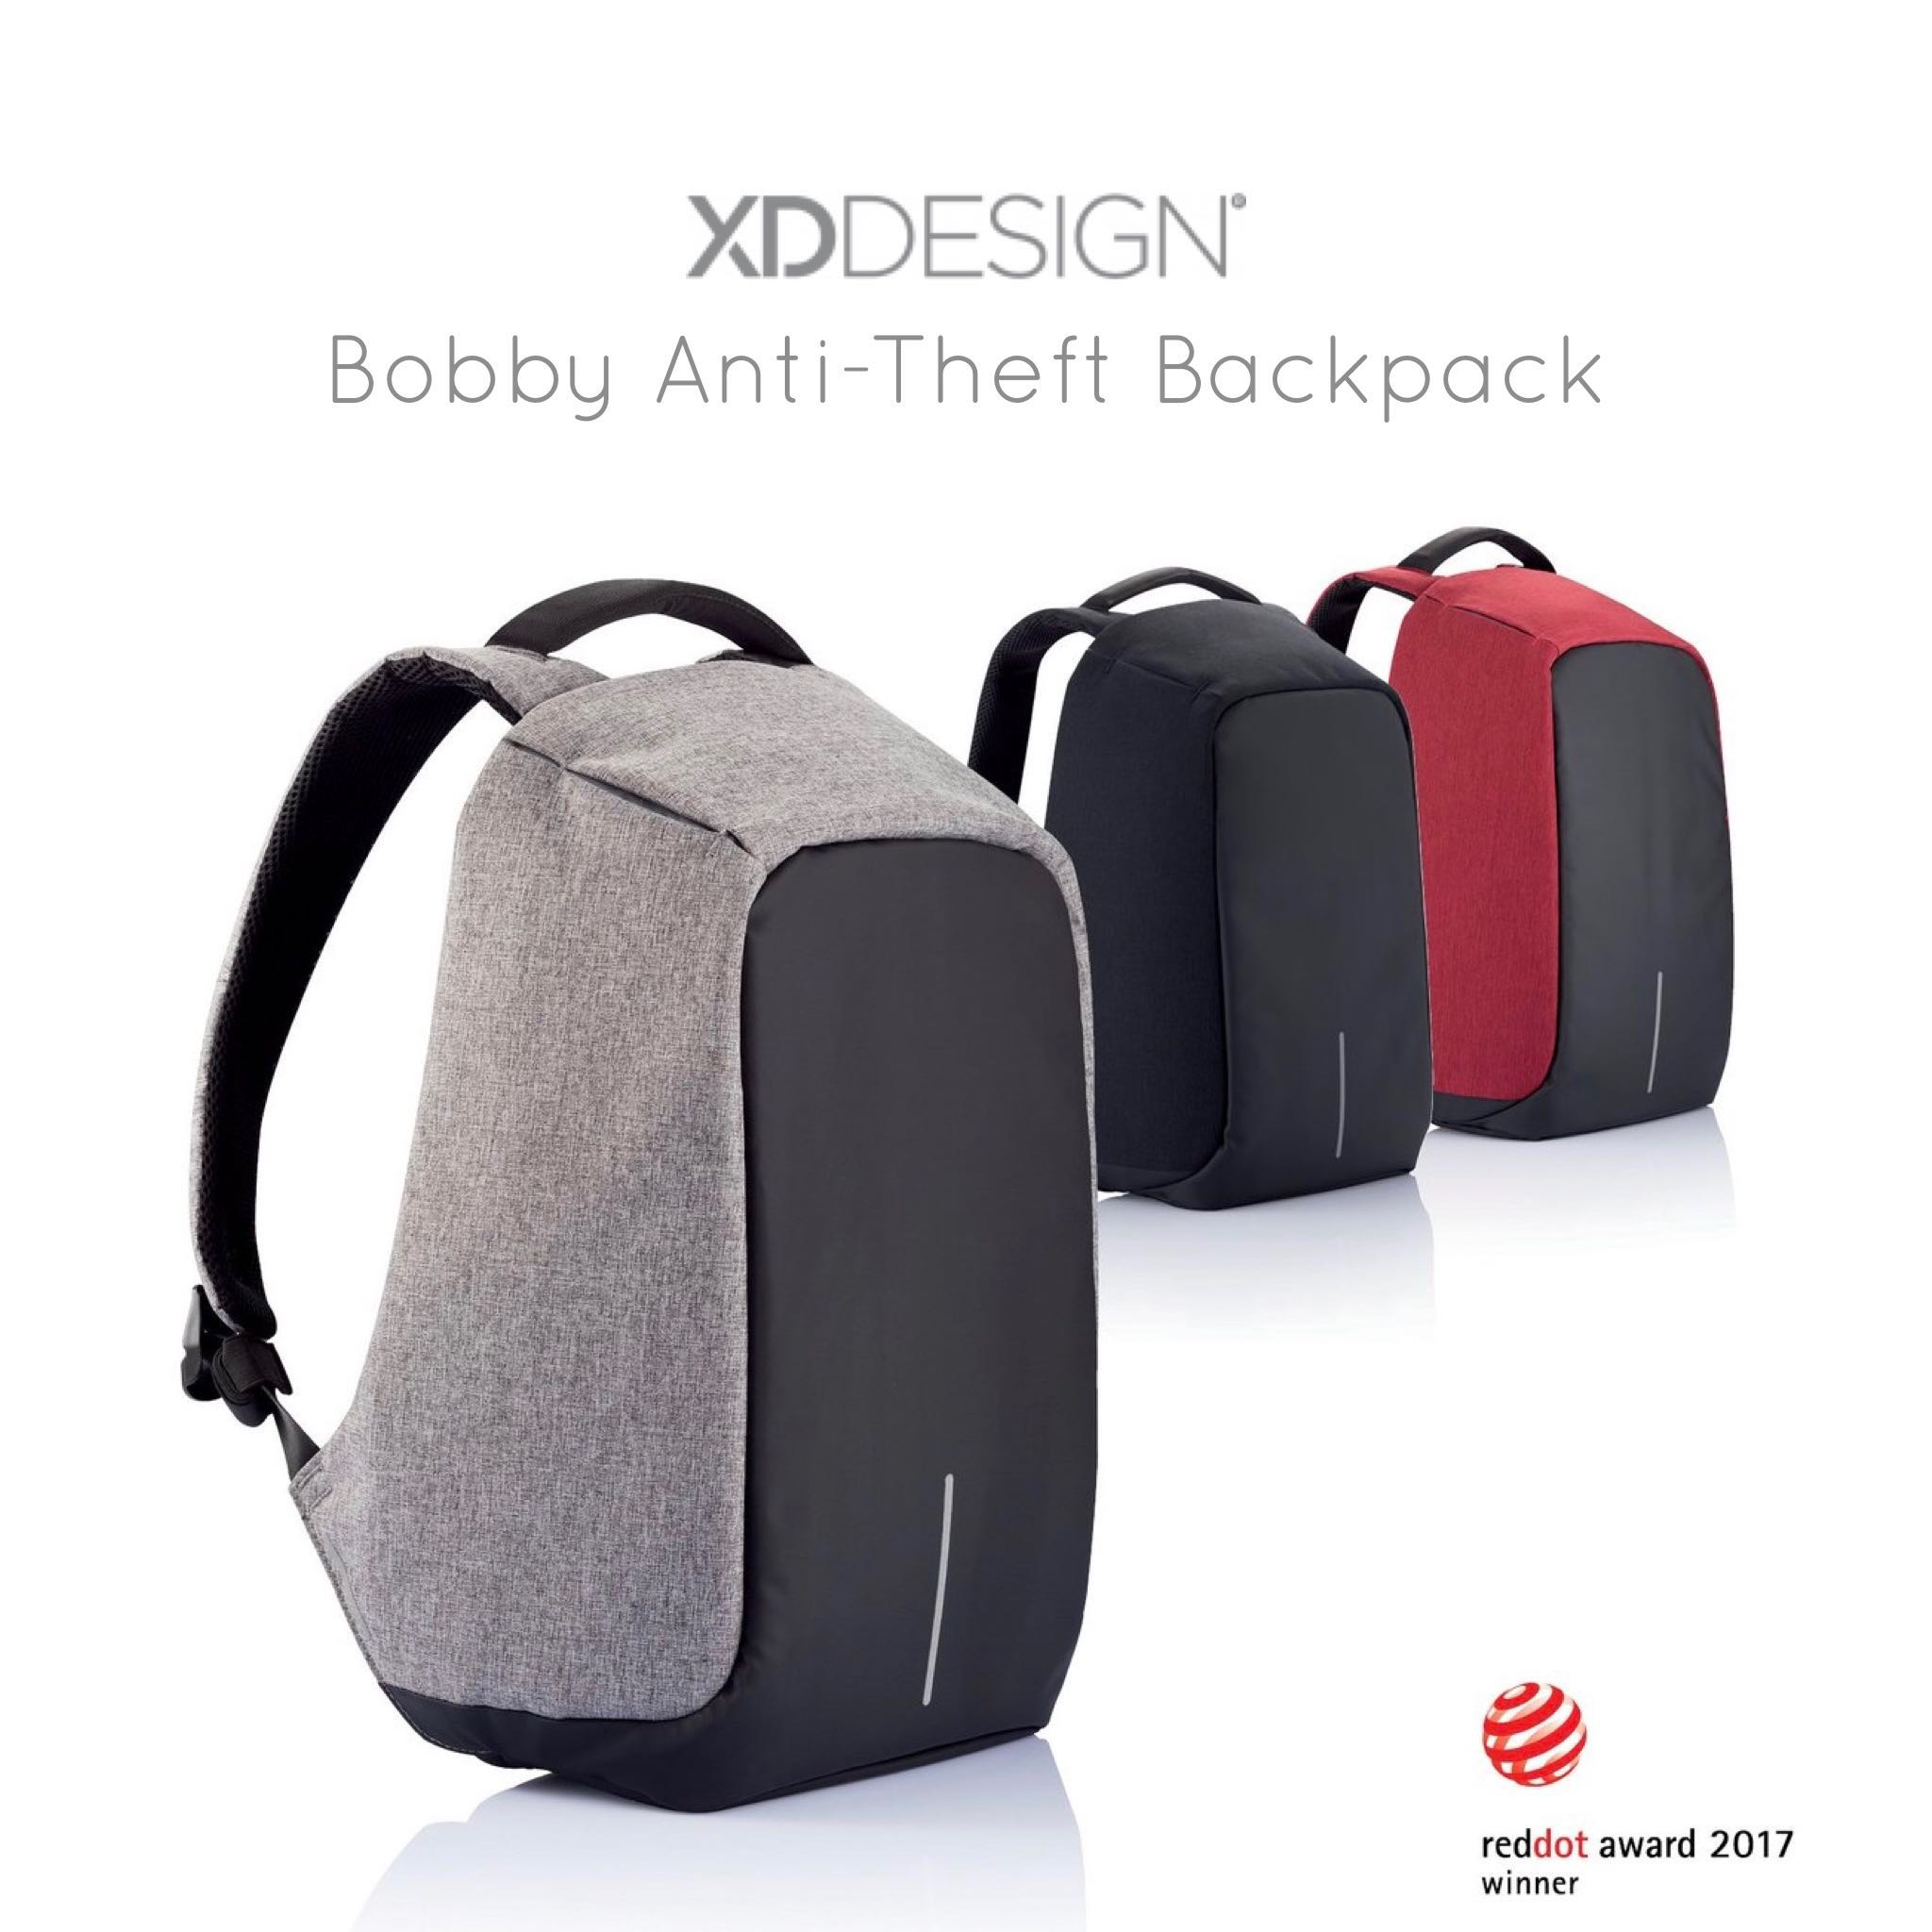 *CHEAPEST* Authentic + New Bobby Anti-Theft Backpack , Men's Fashion, Bags & Wallets, Backpacks on Carousell